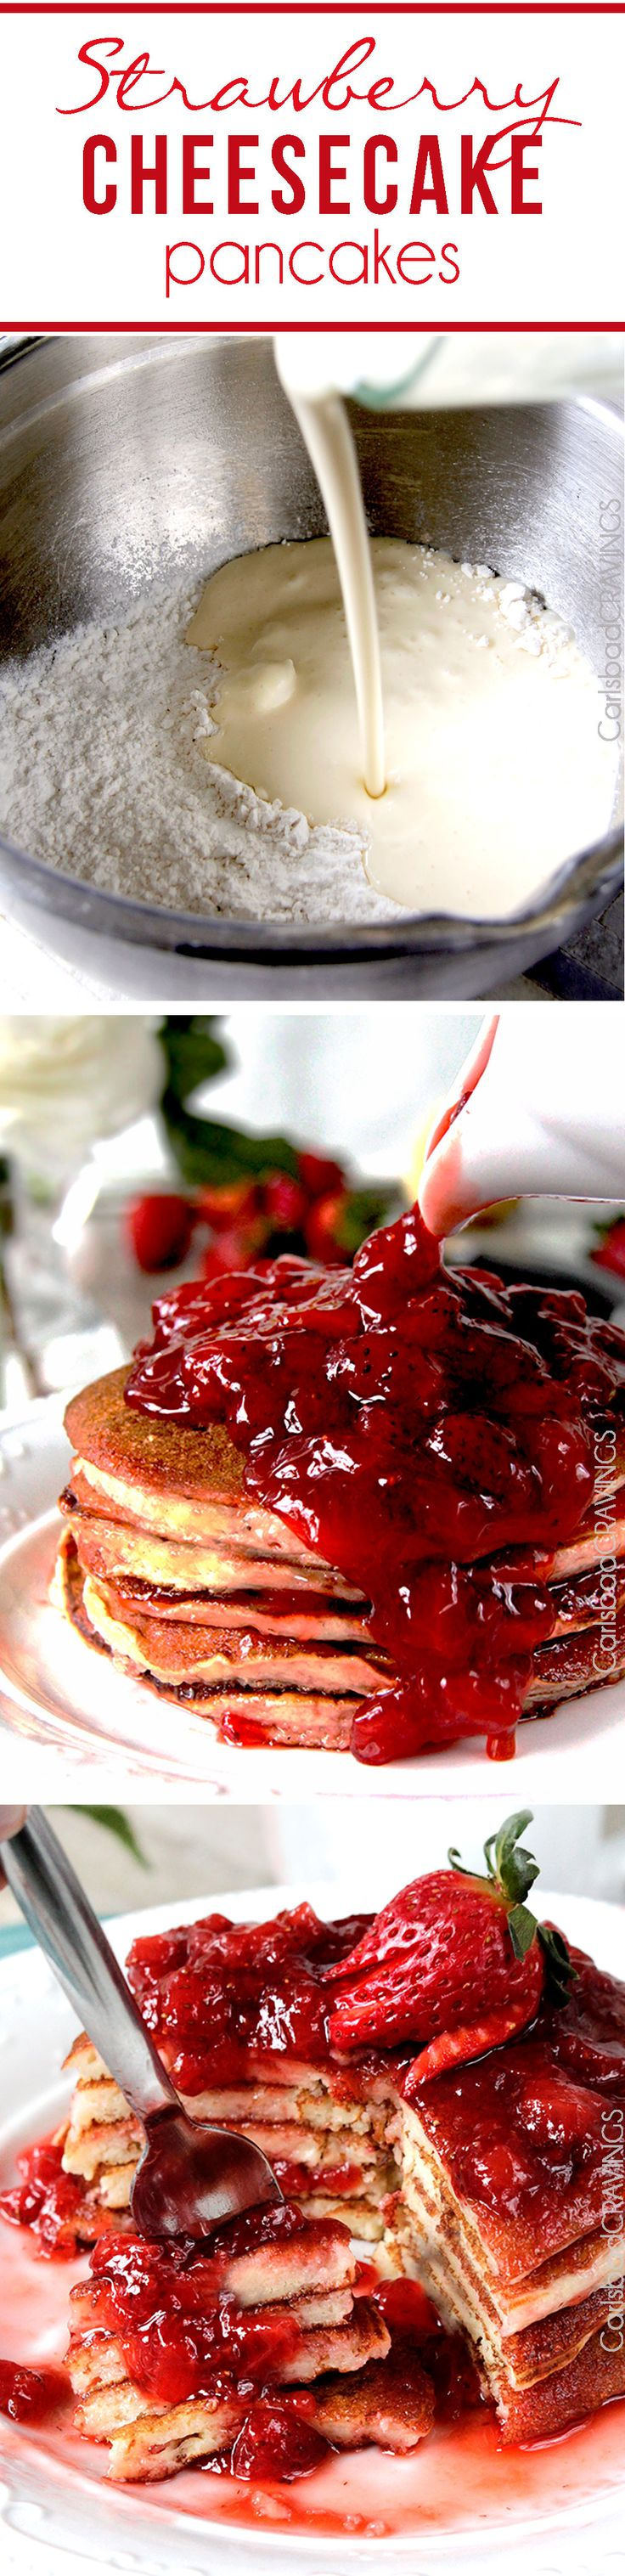 Sweet for Valentines Morning! Easy Strawberry Cheesecake Pancakes = cheesecake filling + pancake dry ingredients + fresh strawberry syrup = cheesecake for breakfast!